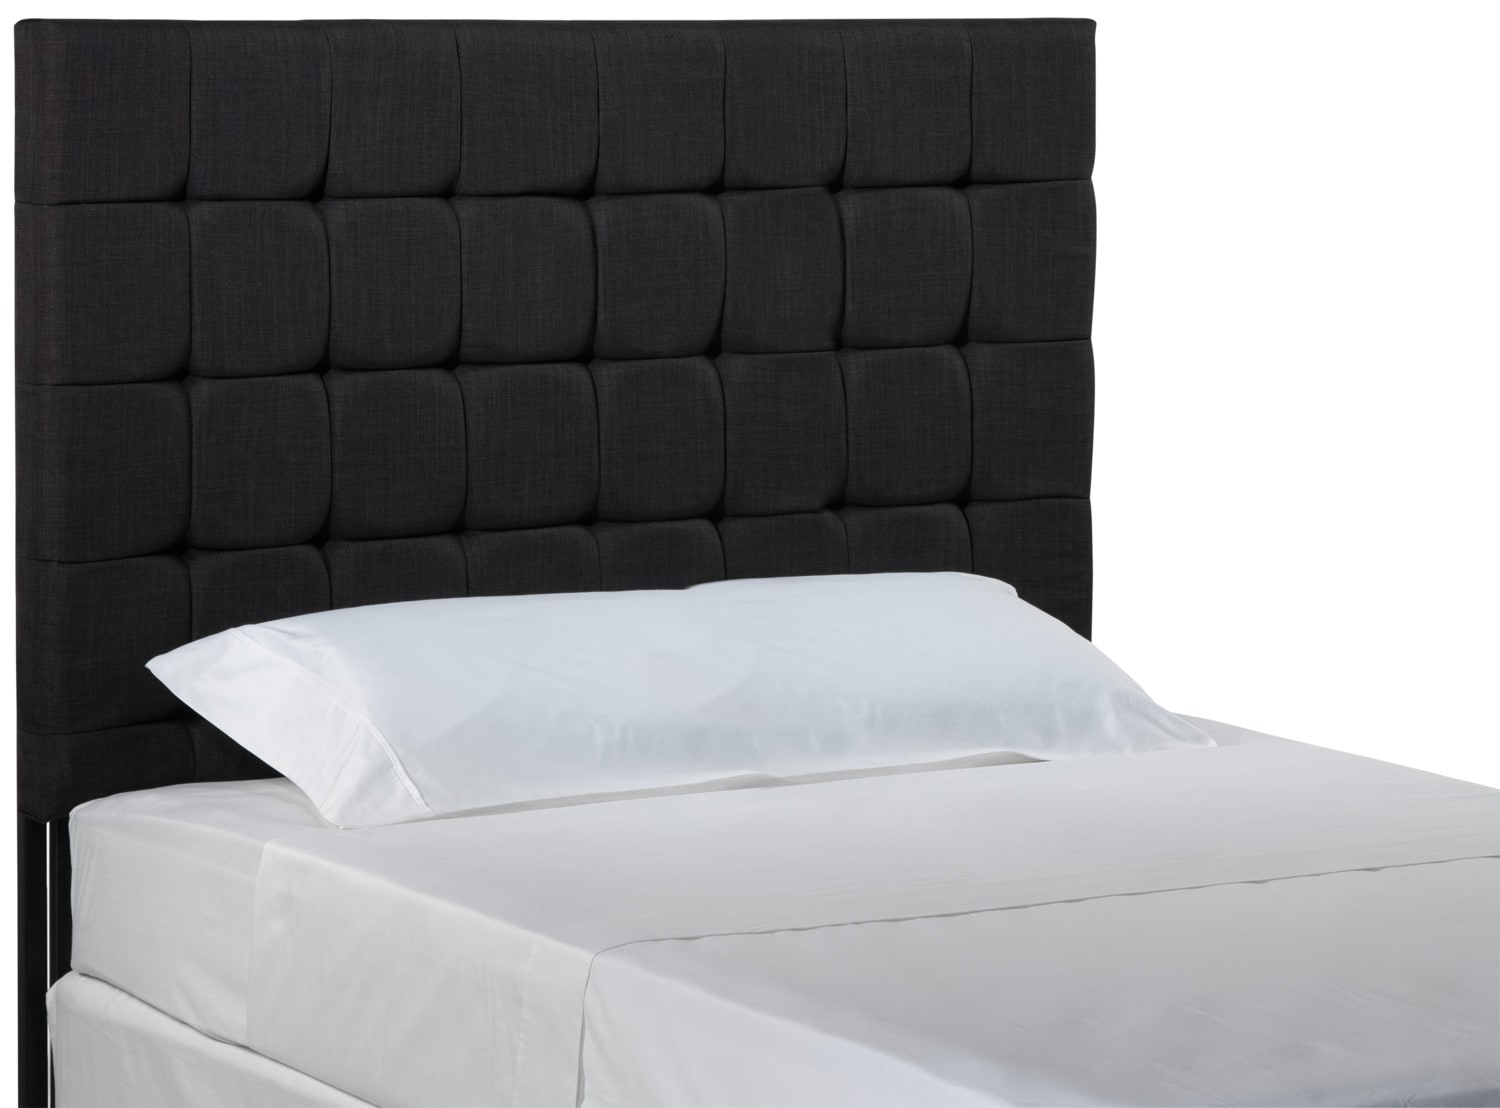 Galvin Queen Headboard - Charcoal